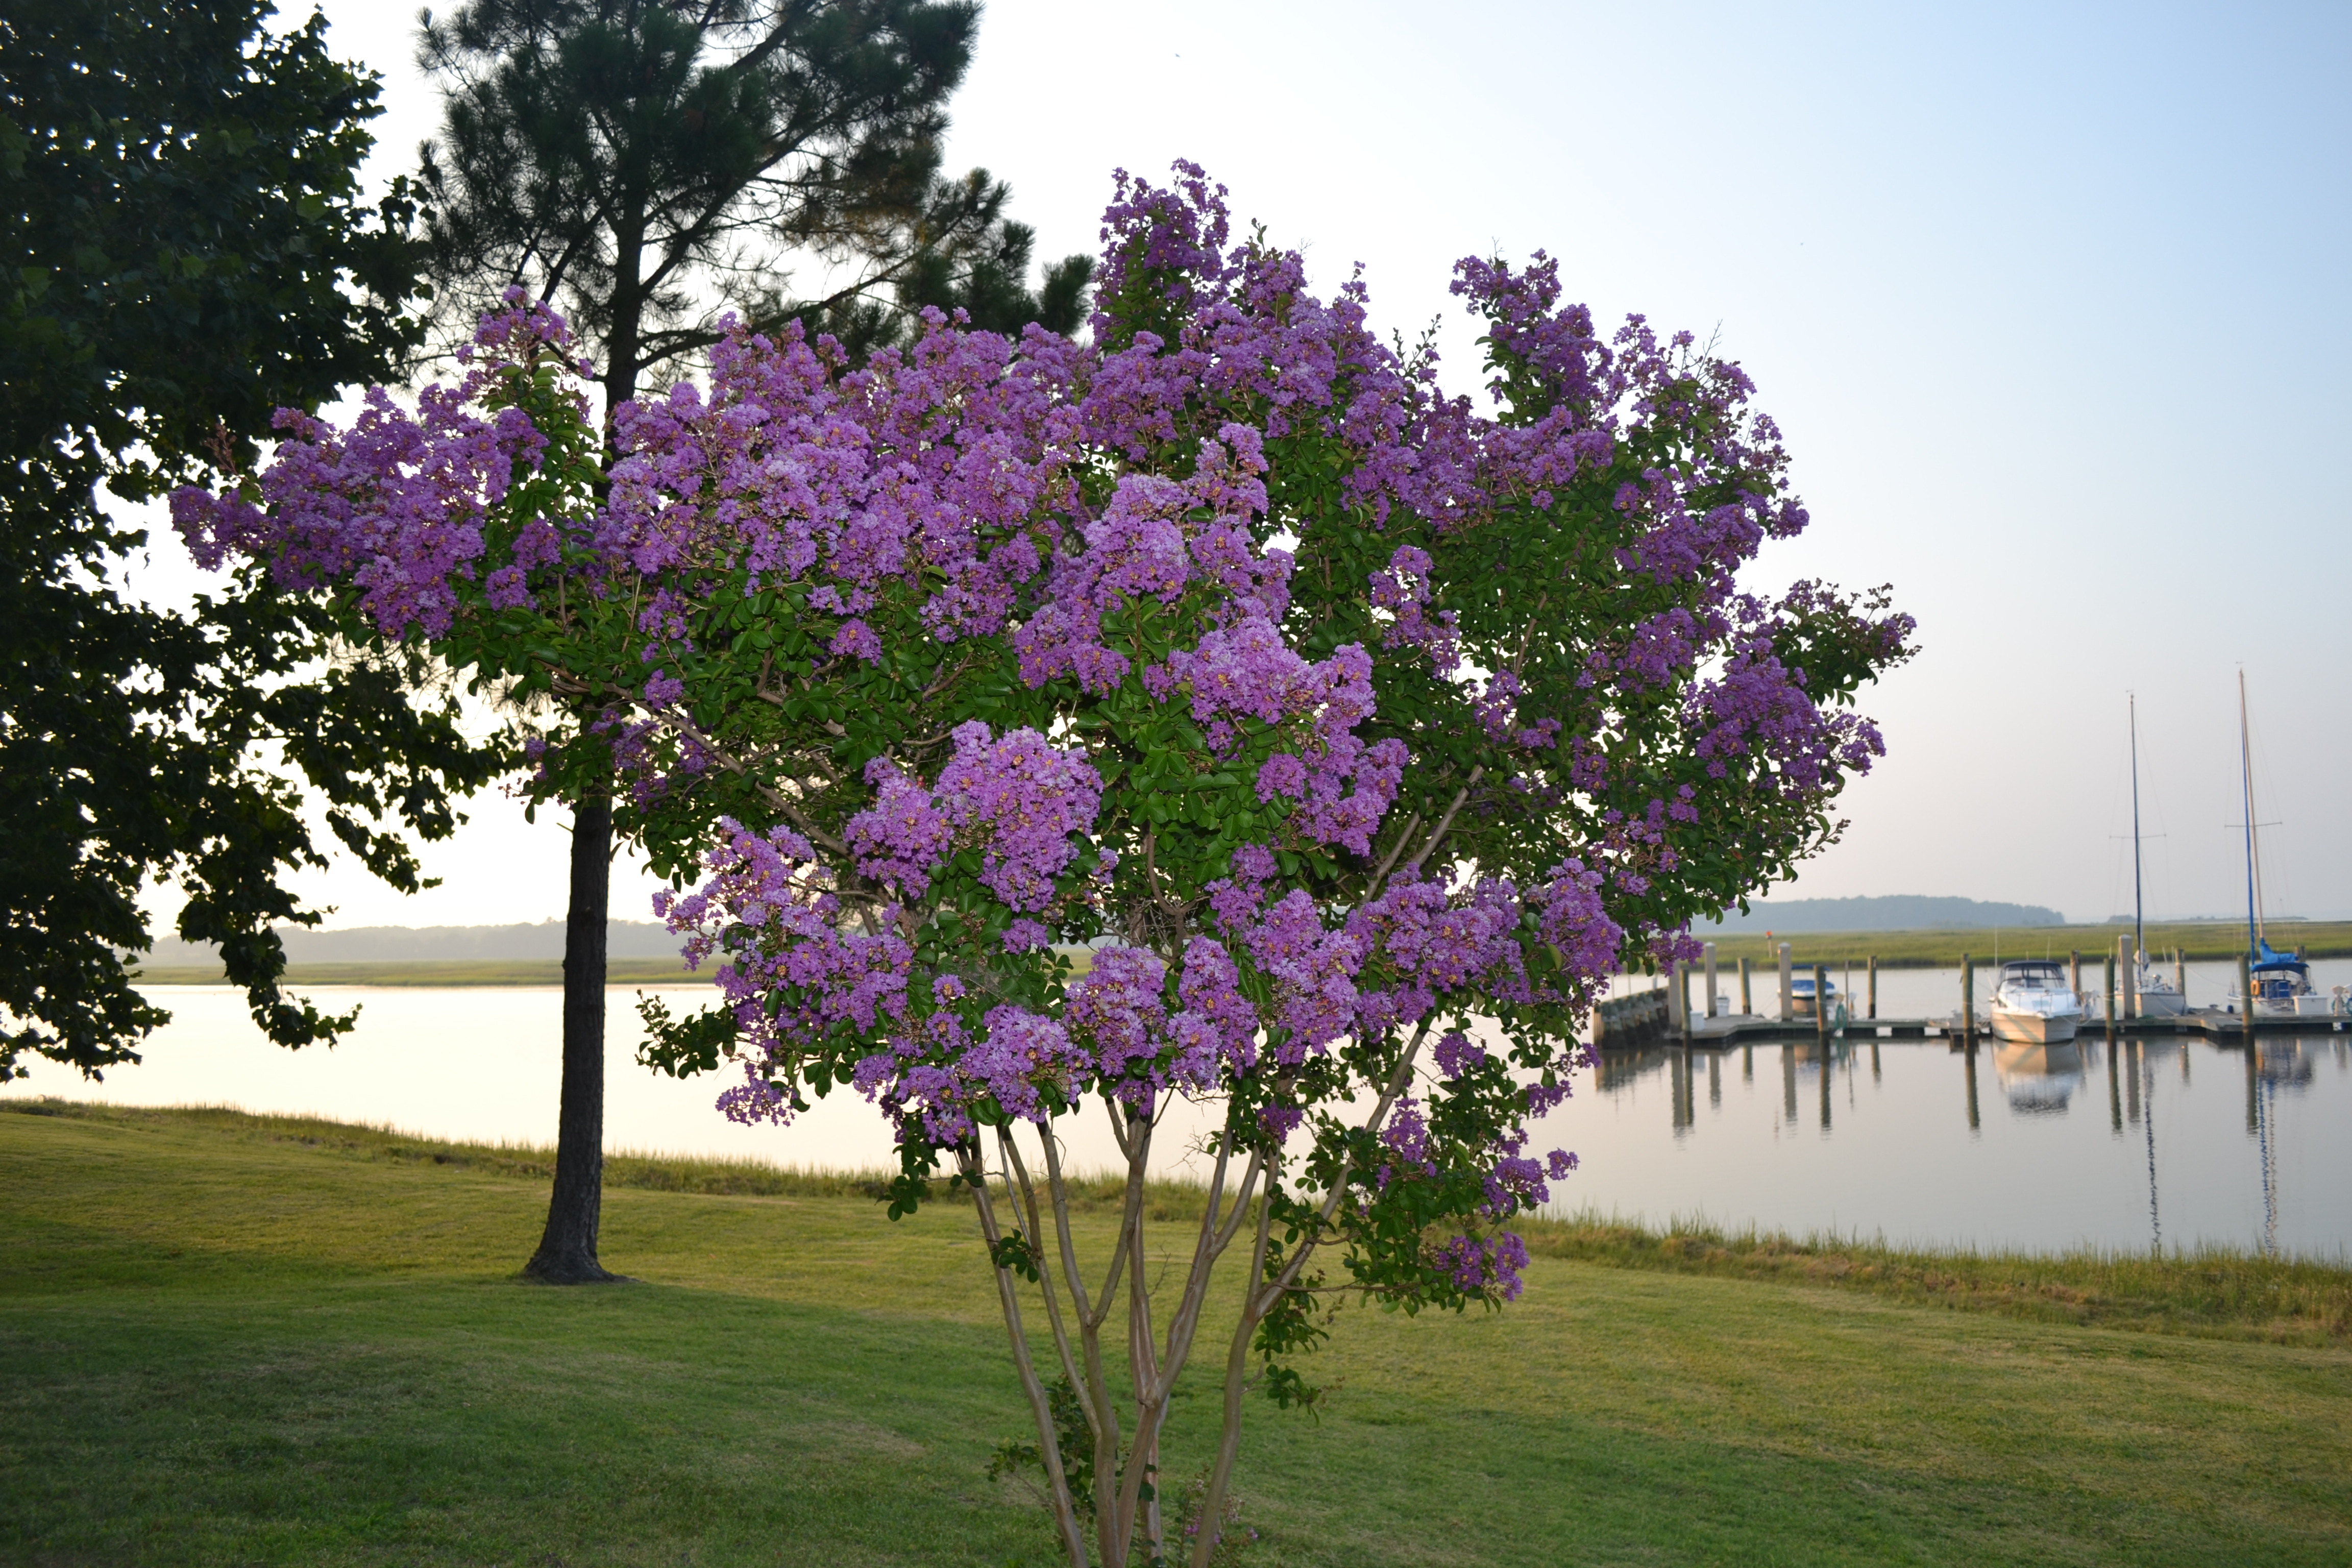 crape myrtle2 pm there were several crape myrtles